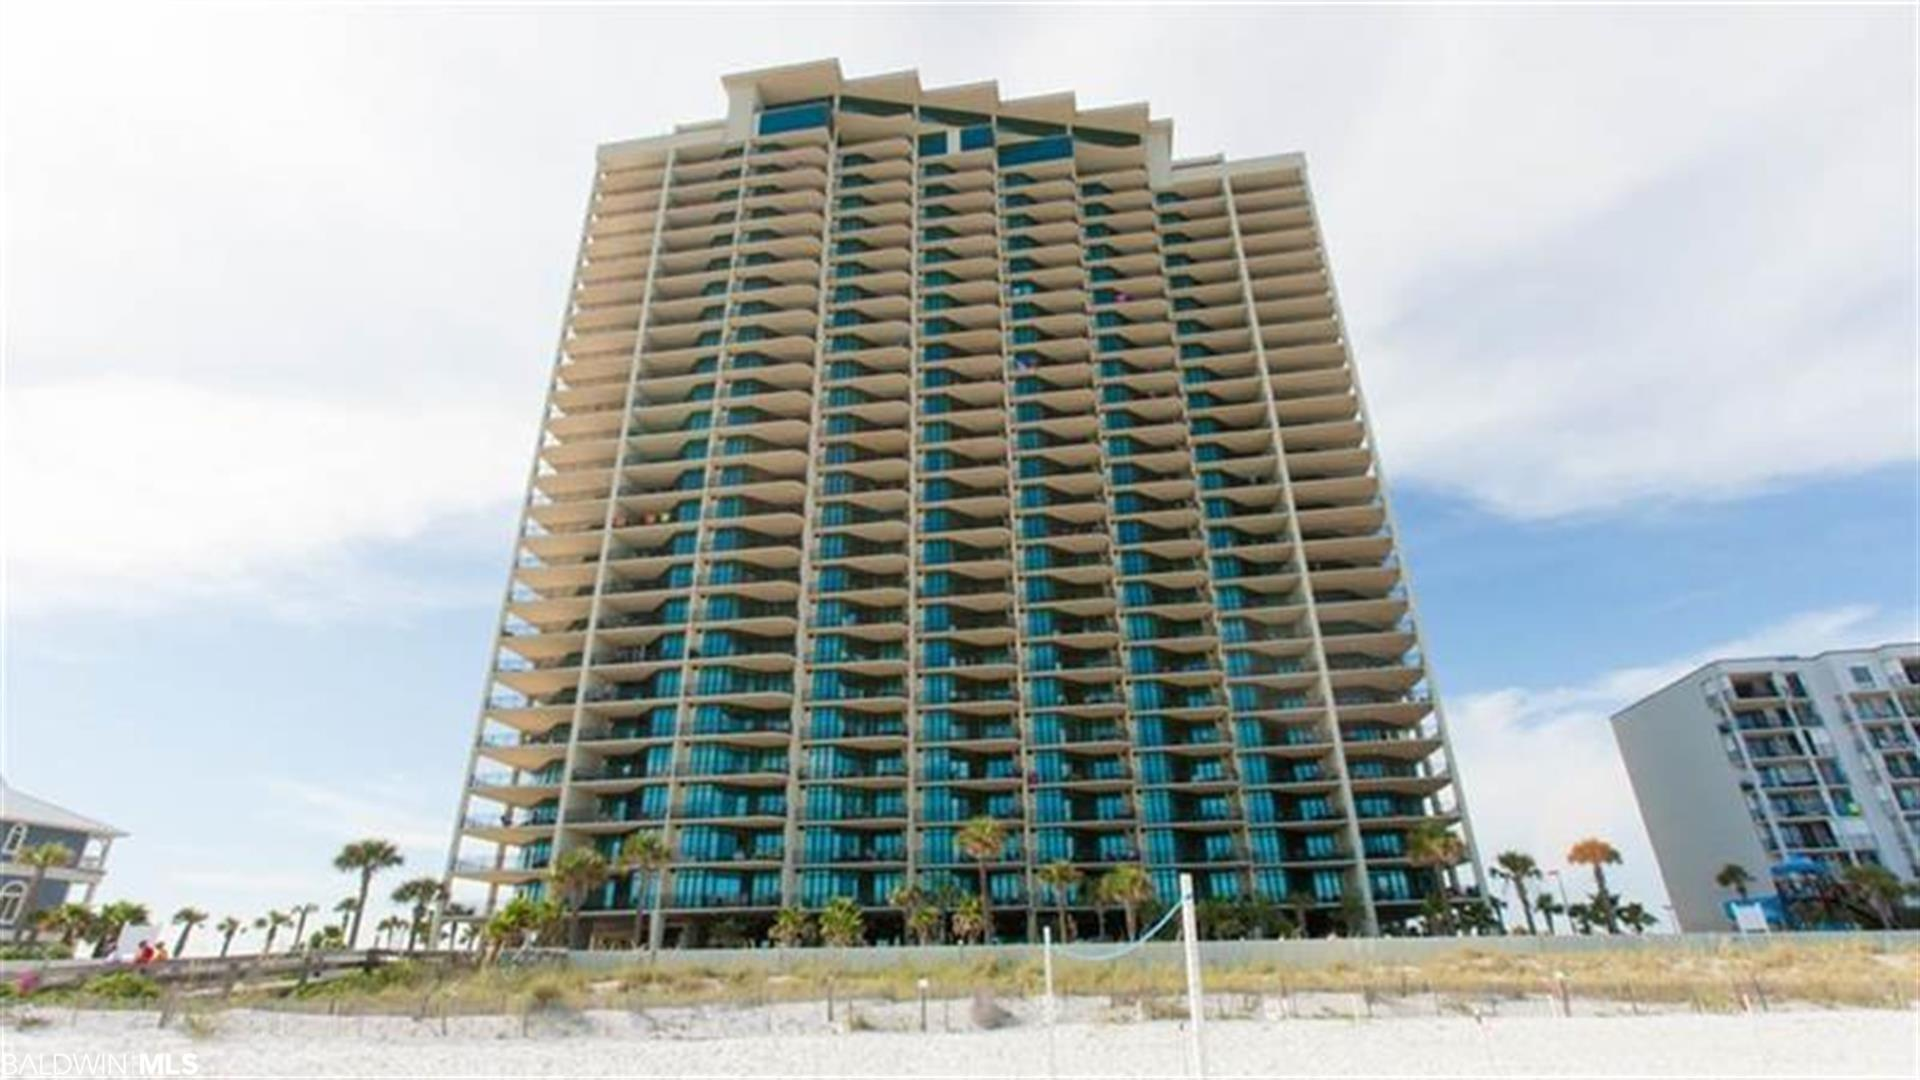 Skip the elevators and park on the same floor as your condo! This Gulf front beach condo boasts 3 bedrooms and 4 baths with a fully-equipped kitchen with granite counters and stainless steel appliances, wet bar with ice maker and a full-size washer and dryer.  Phoenix West offers fantastic amenities like a lazy river, water slide, zero-entry pool, kiddie pool, tennis courts, large indoor heated pool with hot tubs, grilling area and boardwalk with outdoor shower. You'll never have to leave once you get here!